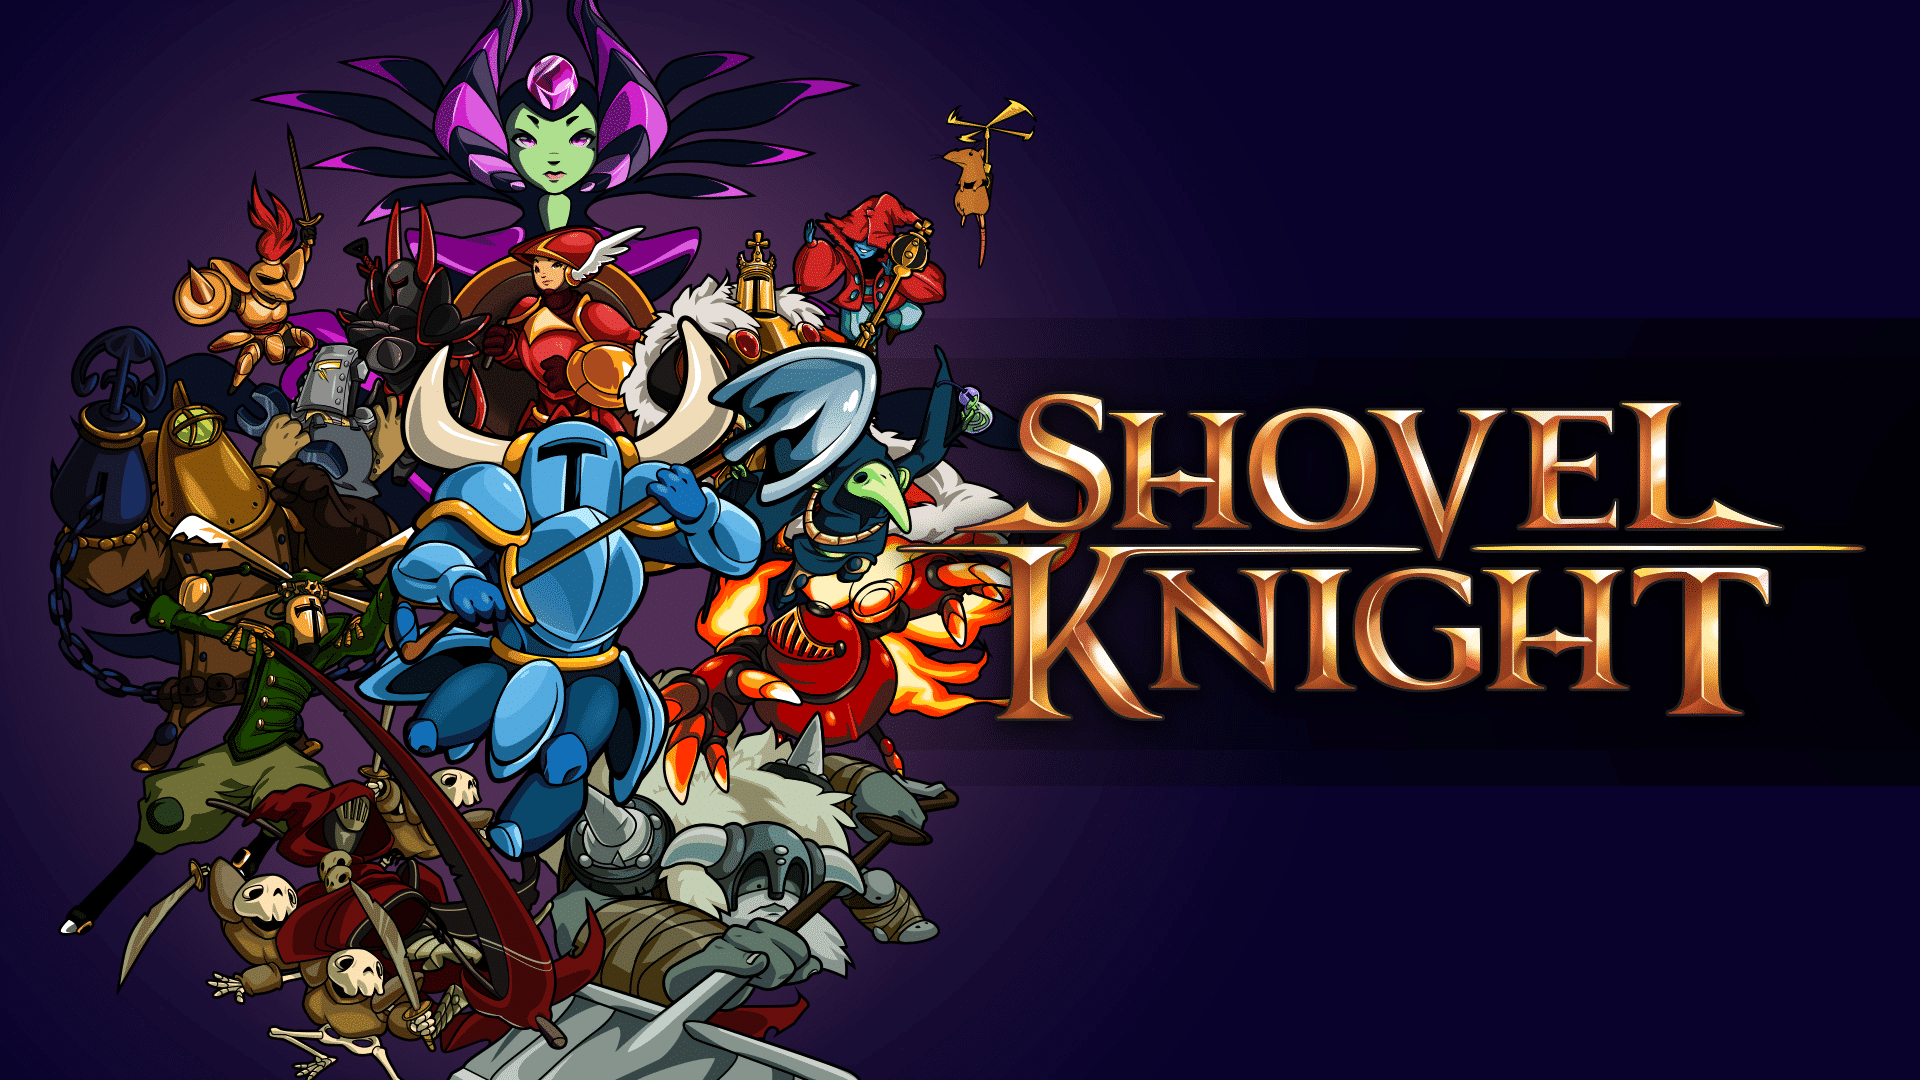 Shovel Knight – Physical version reconfirmed for 2019